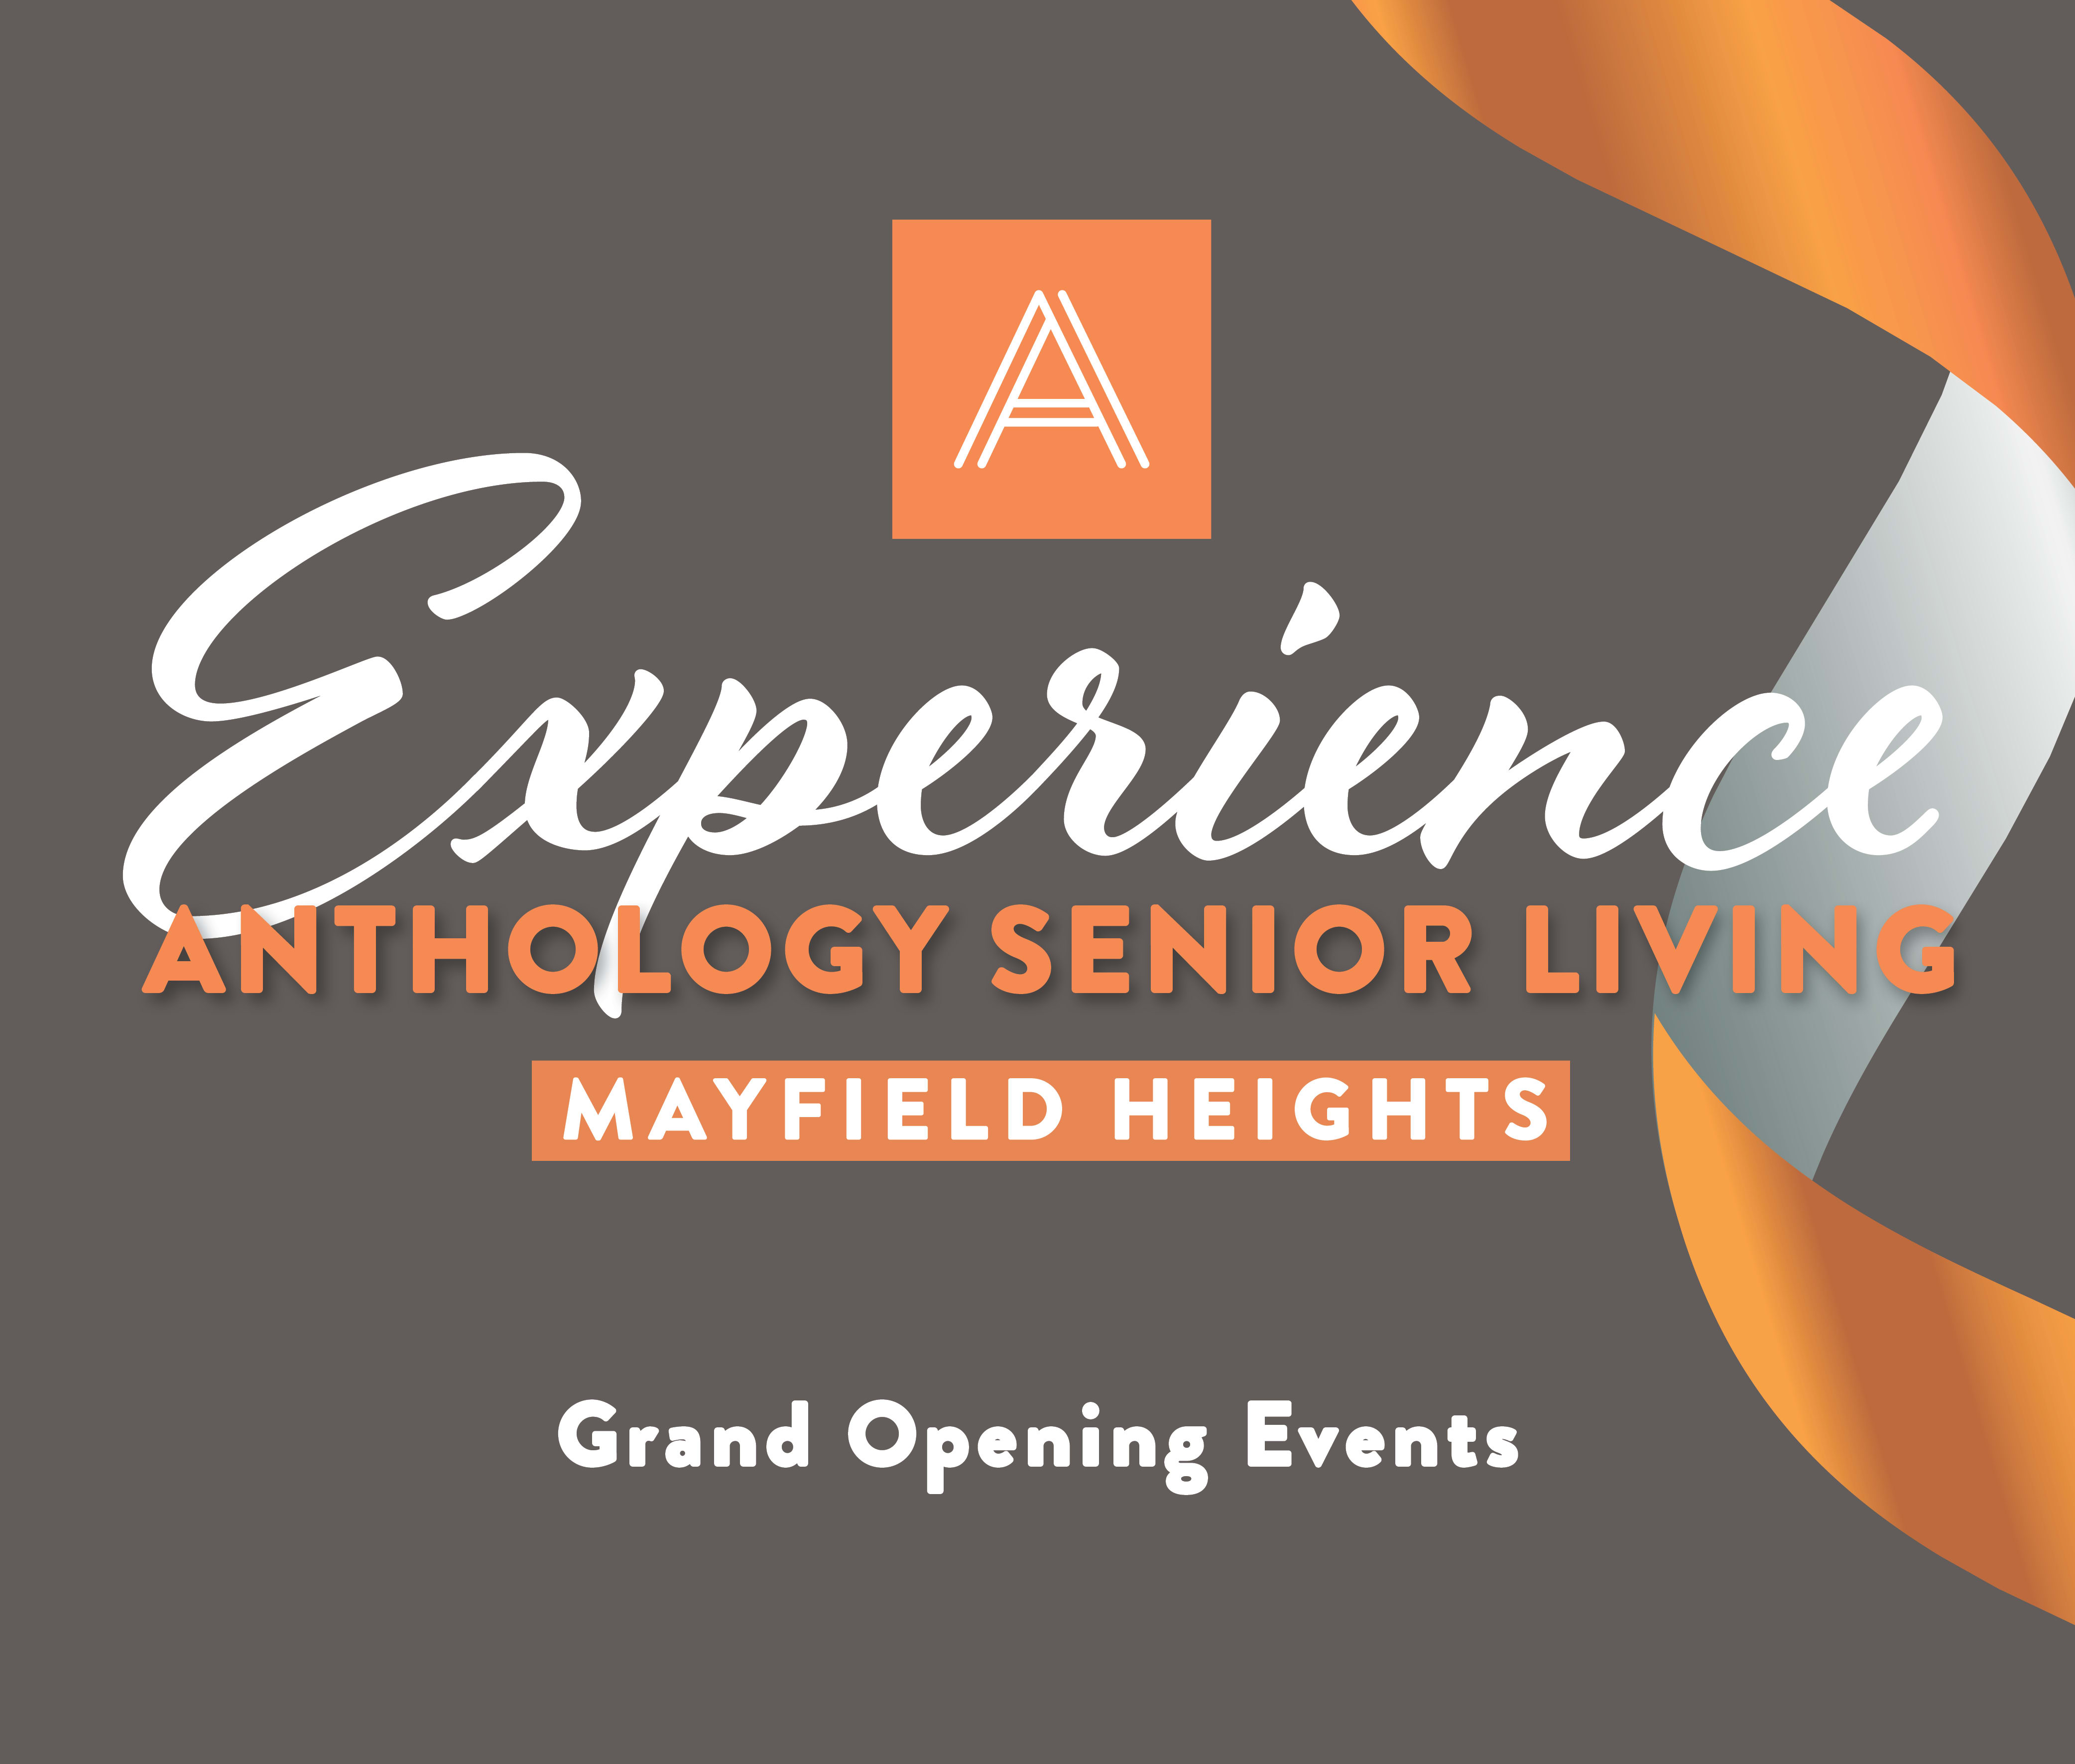 Join us for an event at Anthology of Mayfield Heights - OPENING 2020 in Mayfield Heights, Ohio